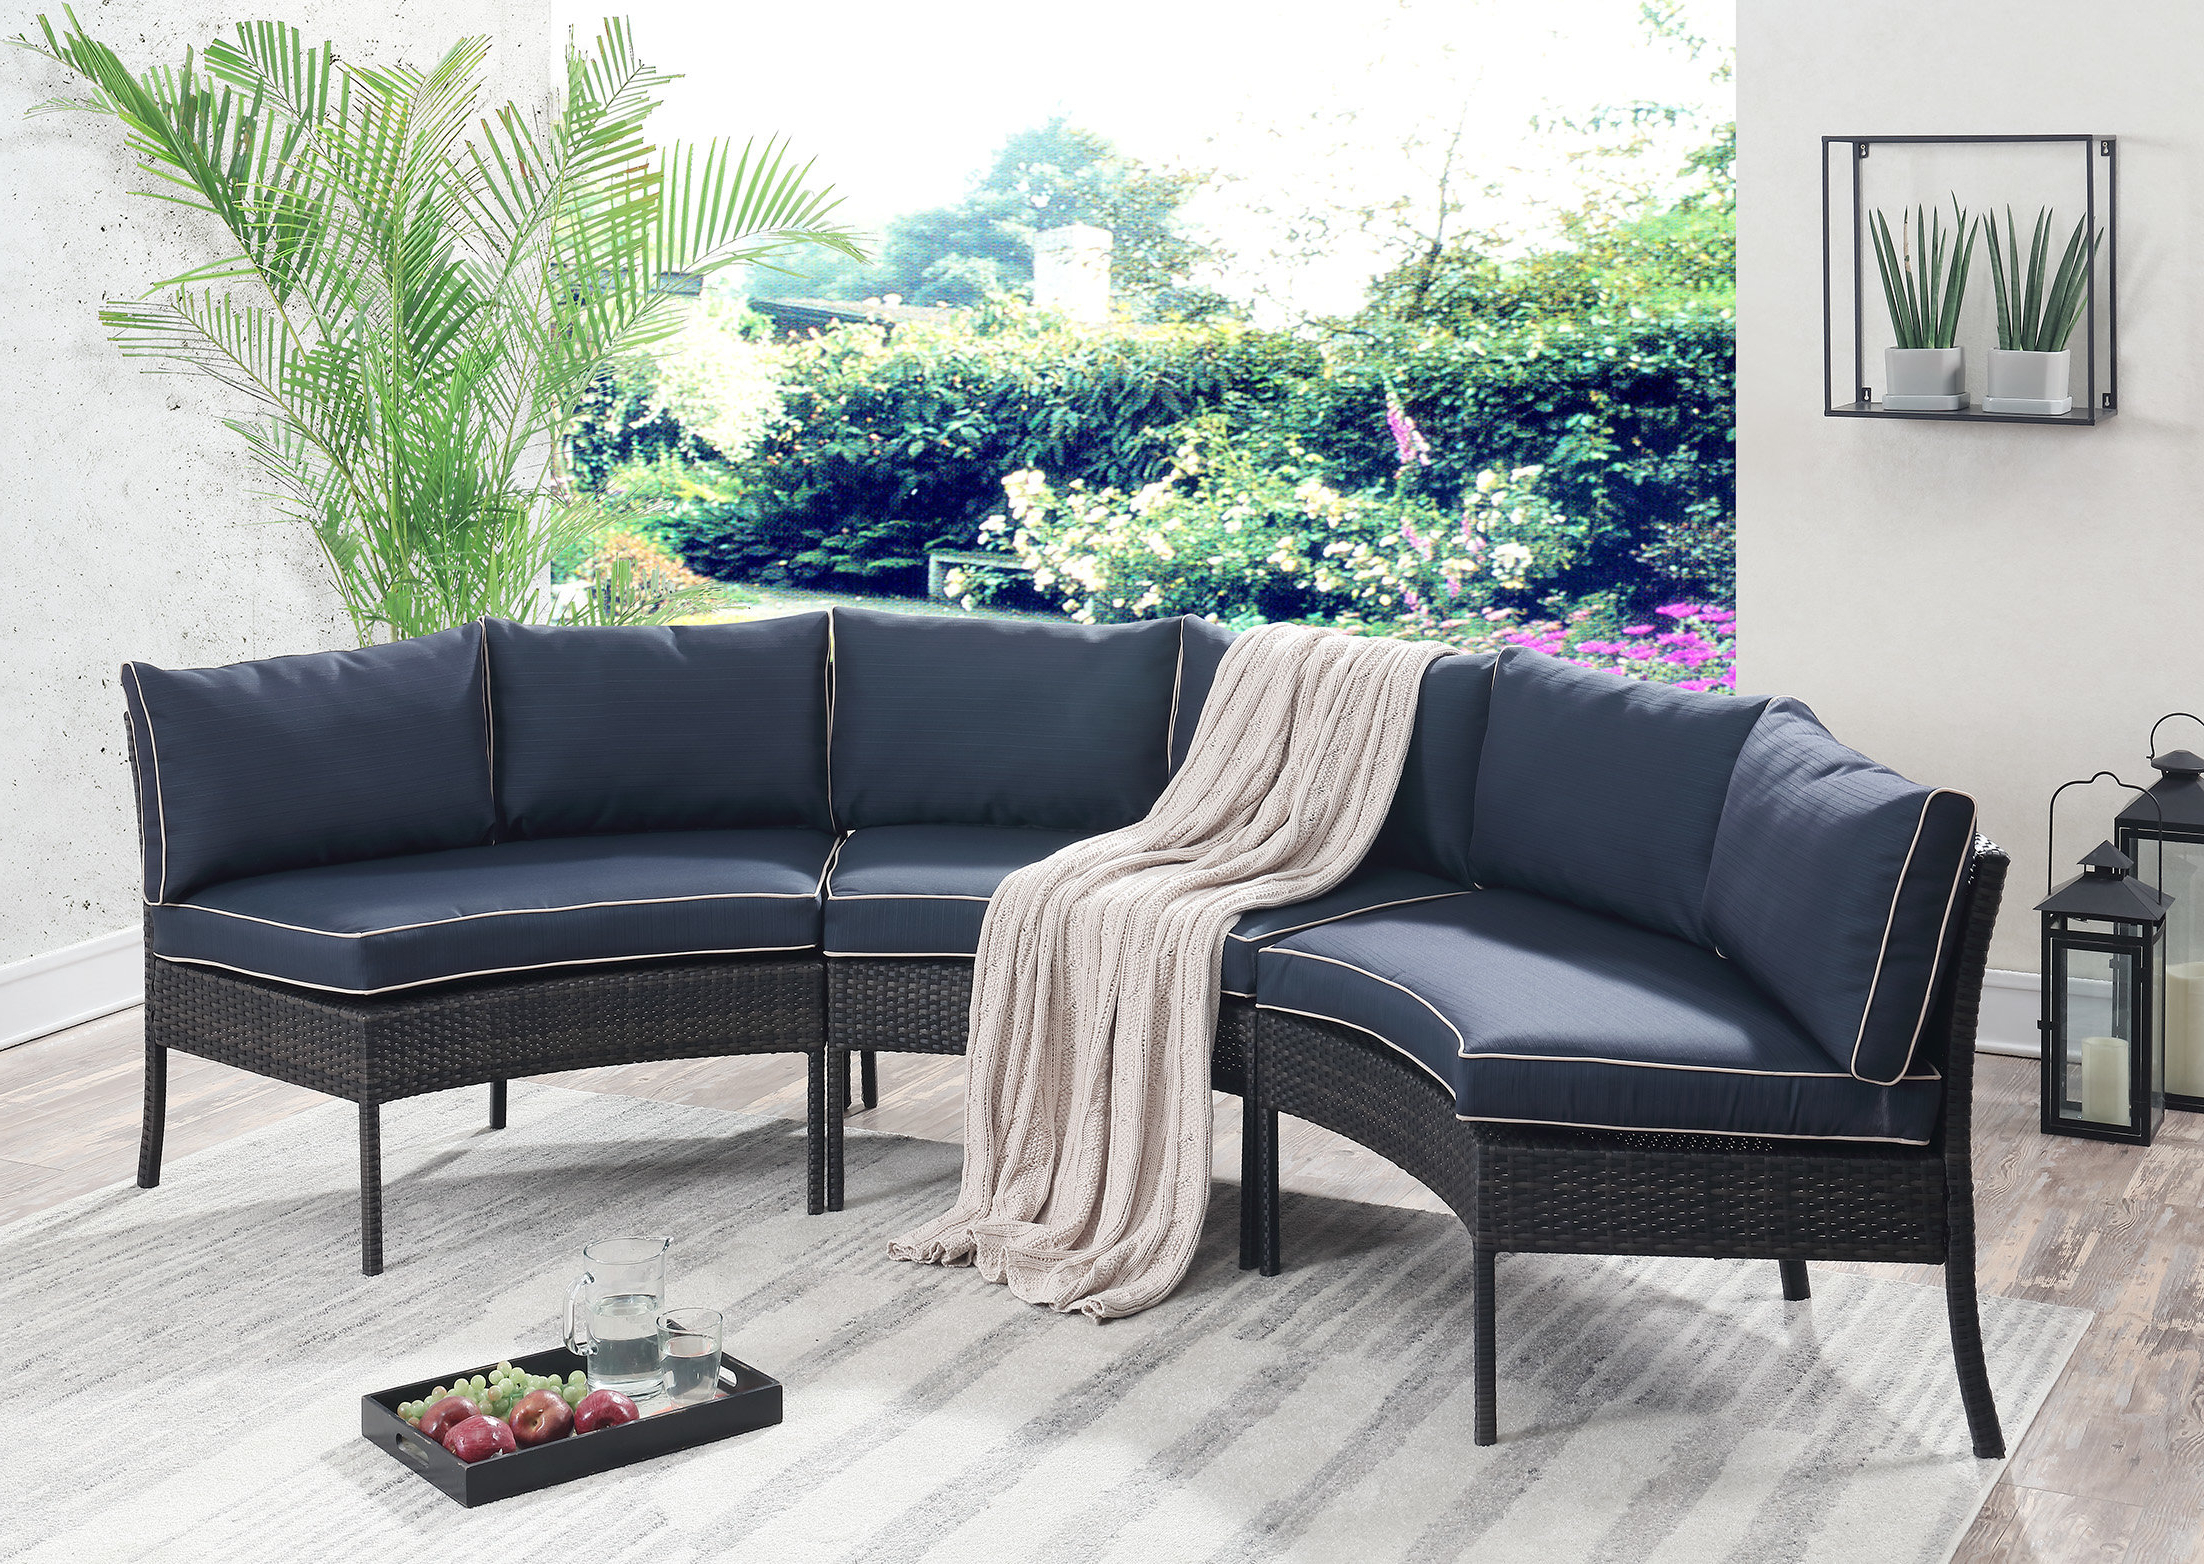 Most Current Purington Circular Patio Sectionals With Cushions With Breakwater Bay Purington Circular Patio Sectional With (View 9 of 20)